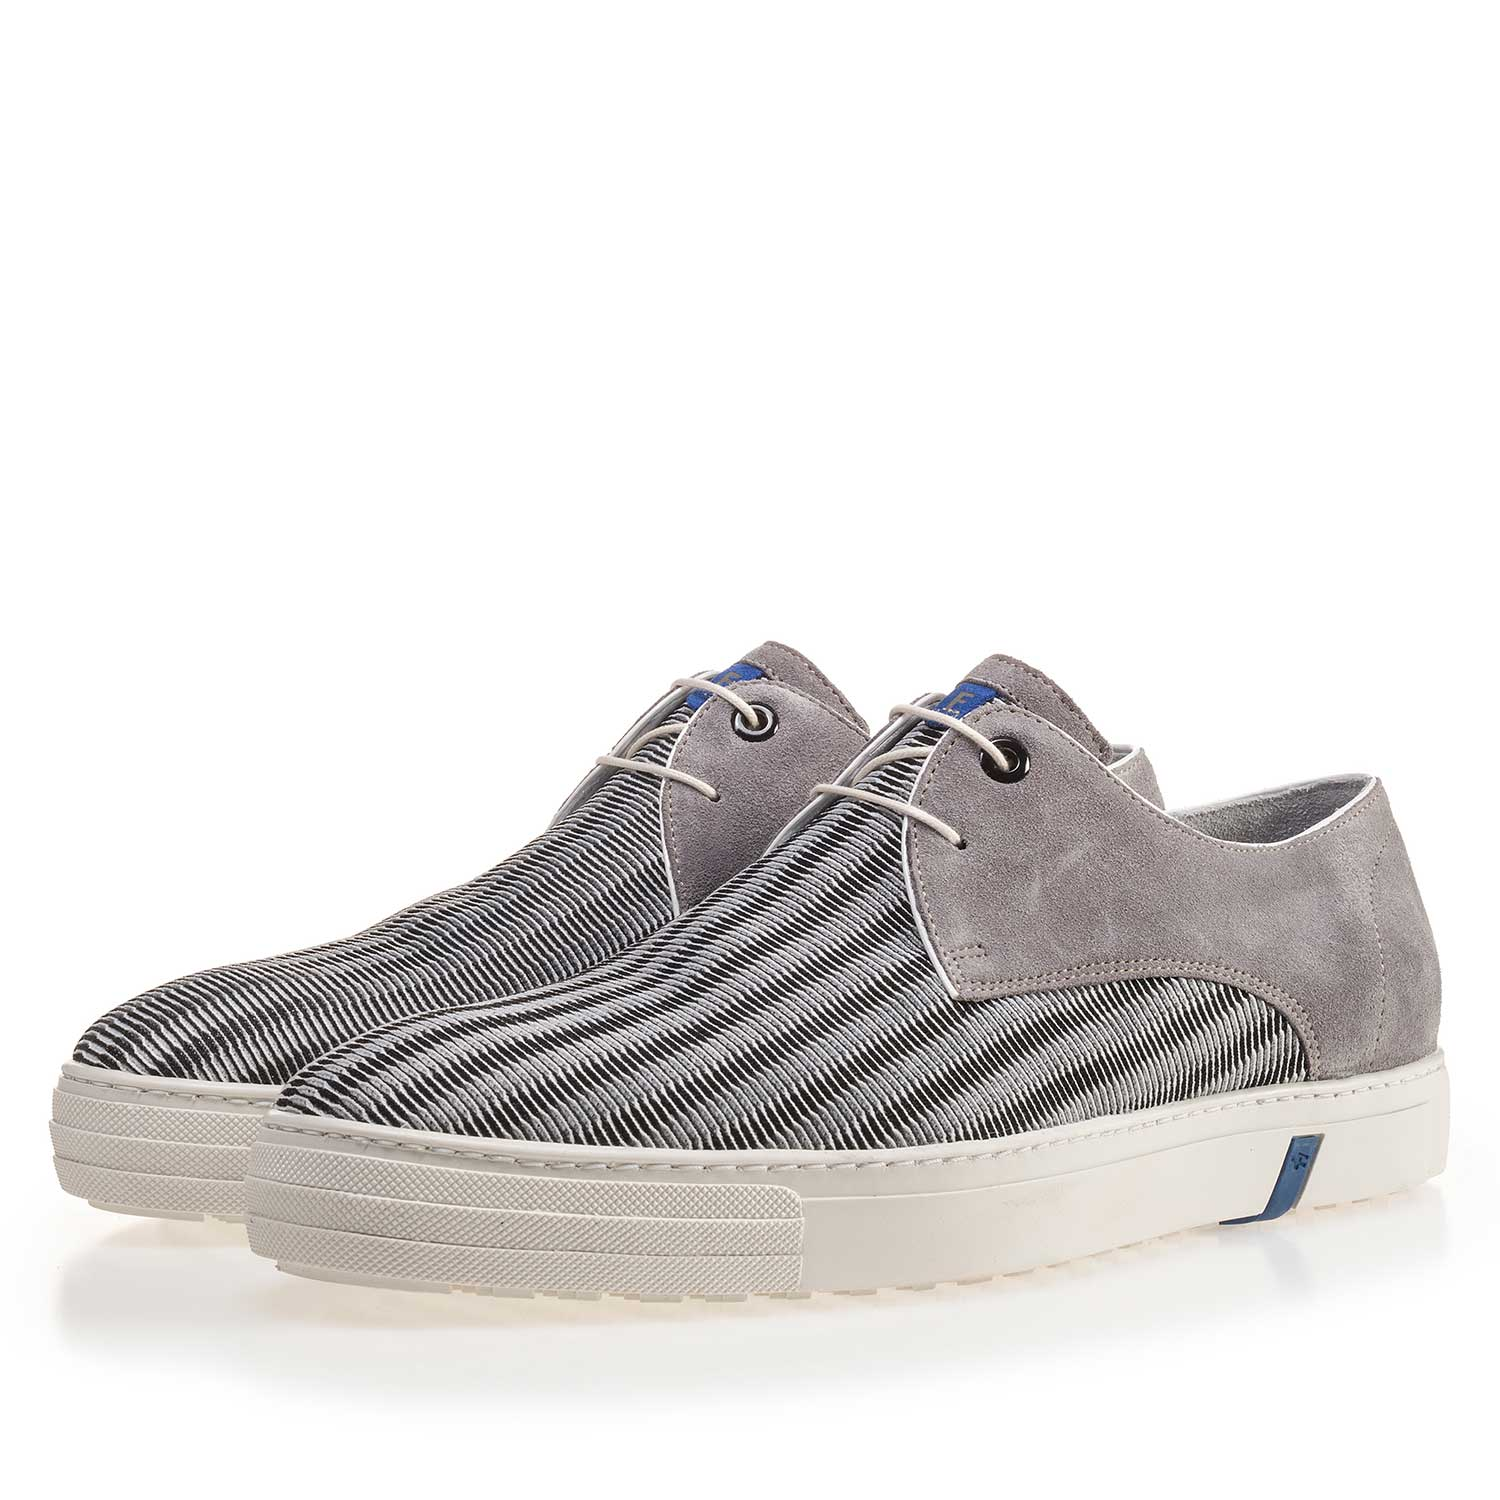 14089/00 - Grey sneaker finished with a mesh relief pattern